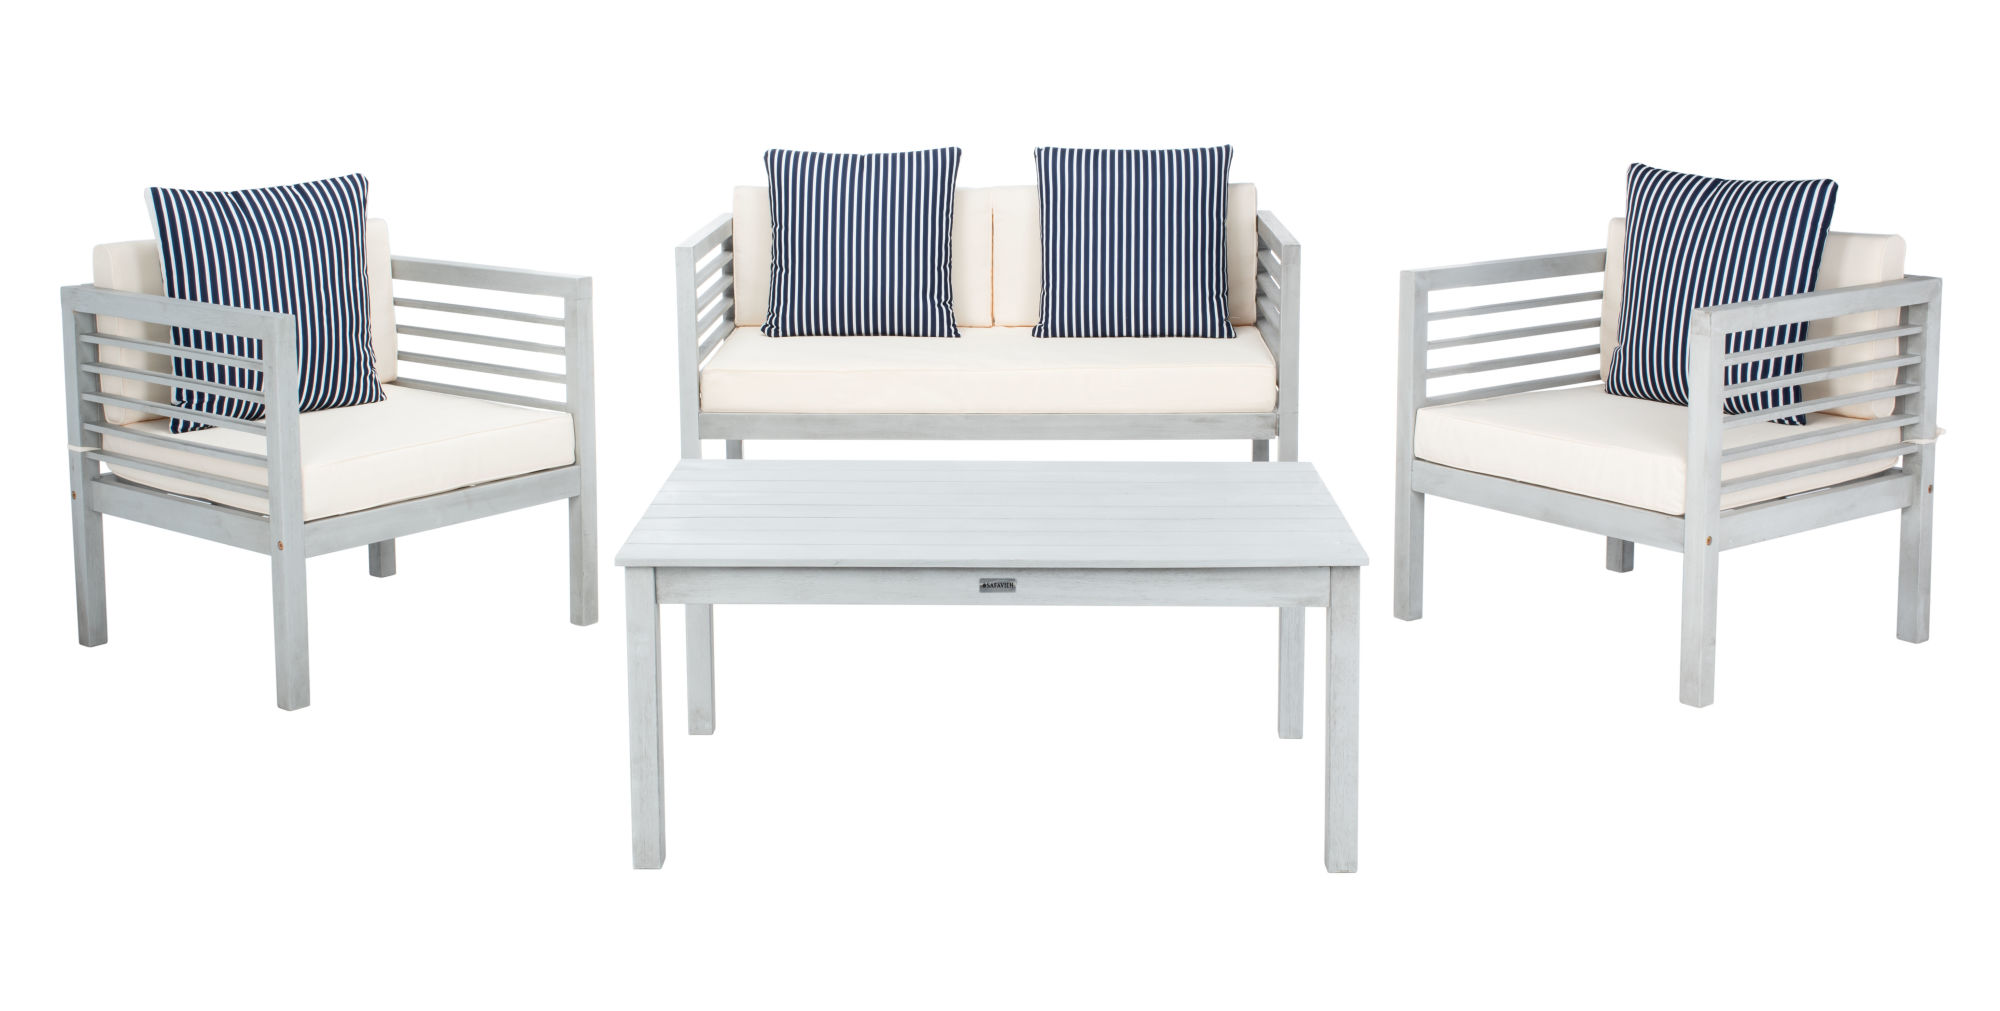 Alda 4 Pc Outdoor Set With Accent Pillows on Safavieh Alda 4Pc Outdoor Set id=47028